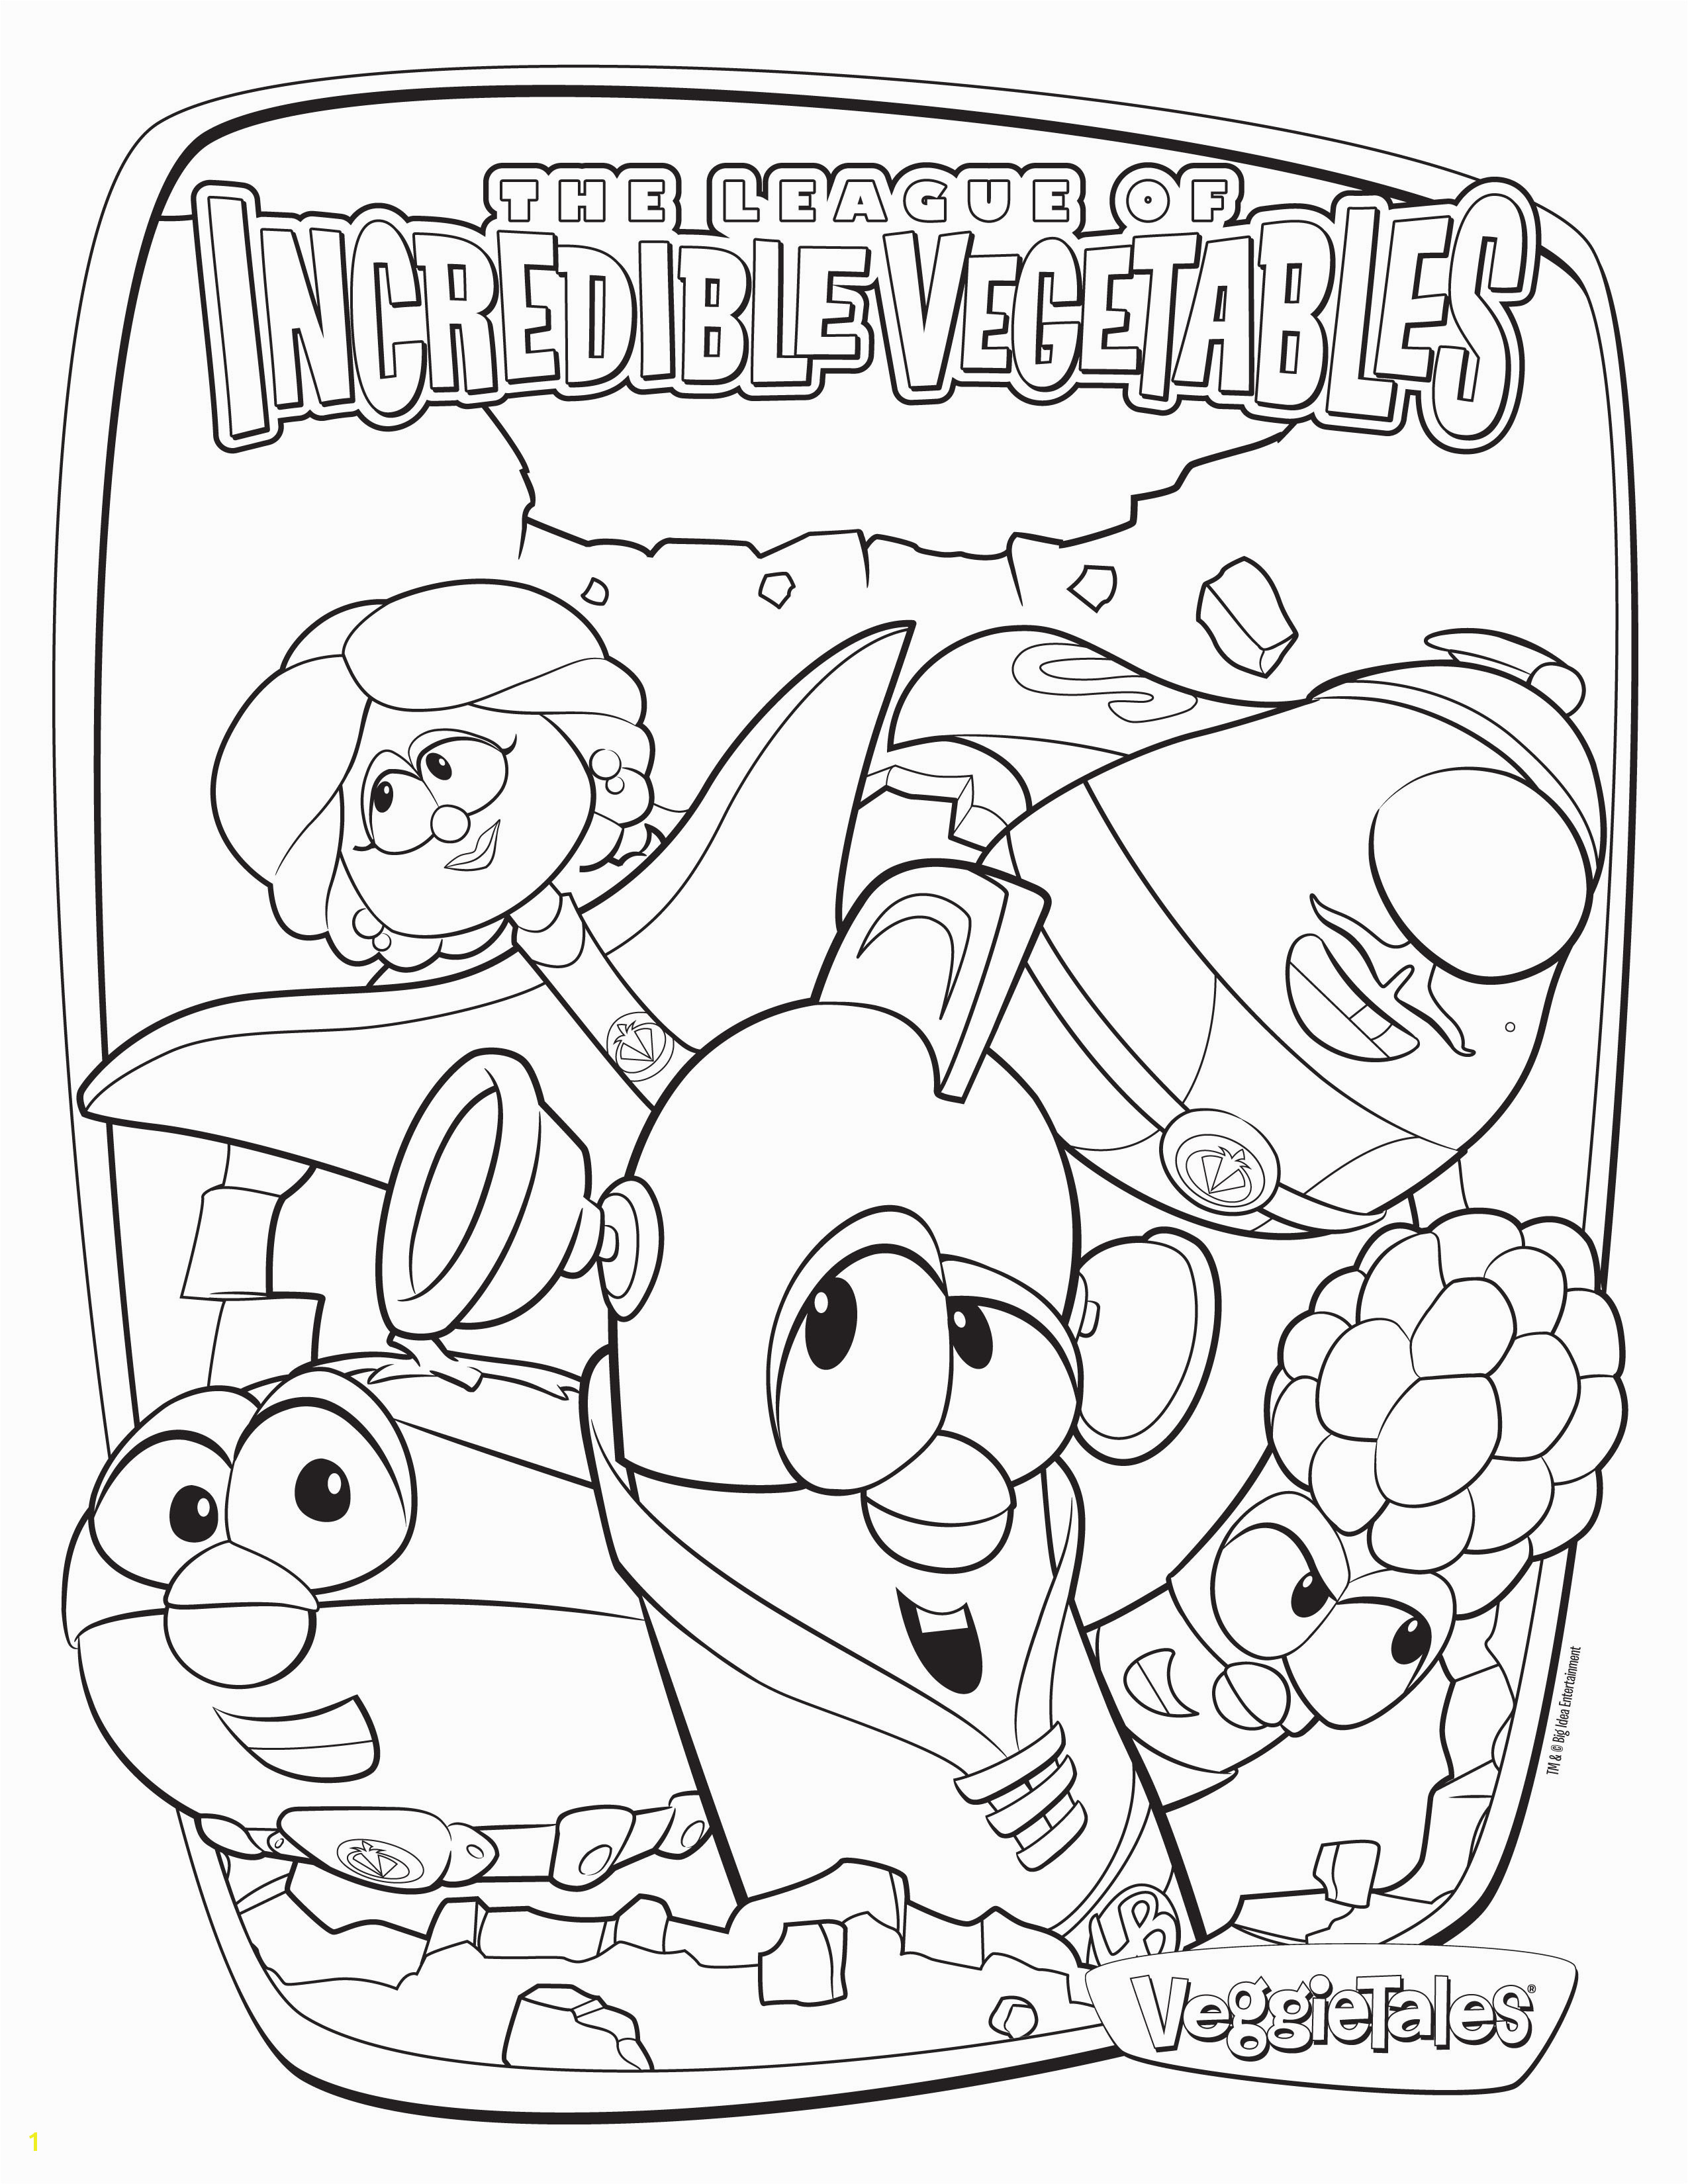 Larryboy and the Bad Apple Coloring Pages 2018 Larryboy and the Bad Apple Coloring Pages Katesgrove